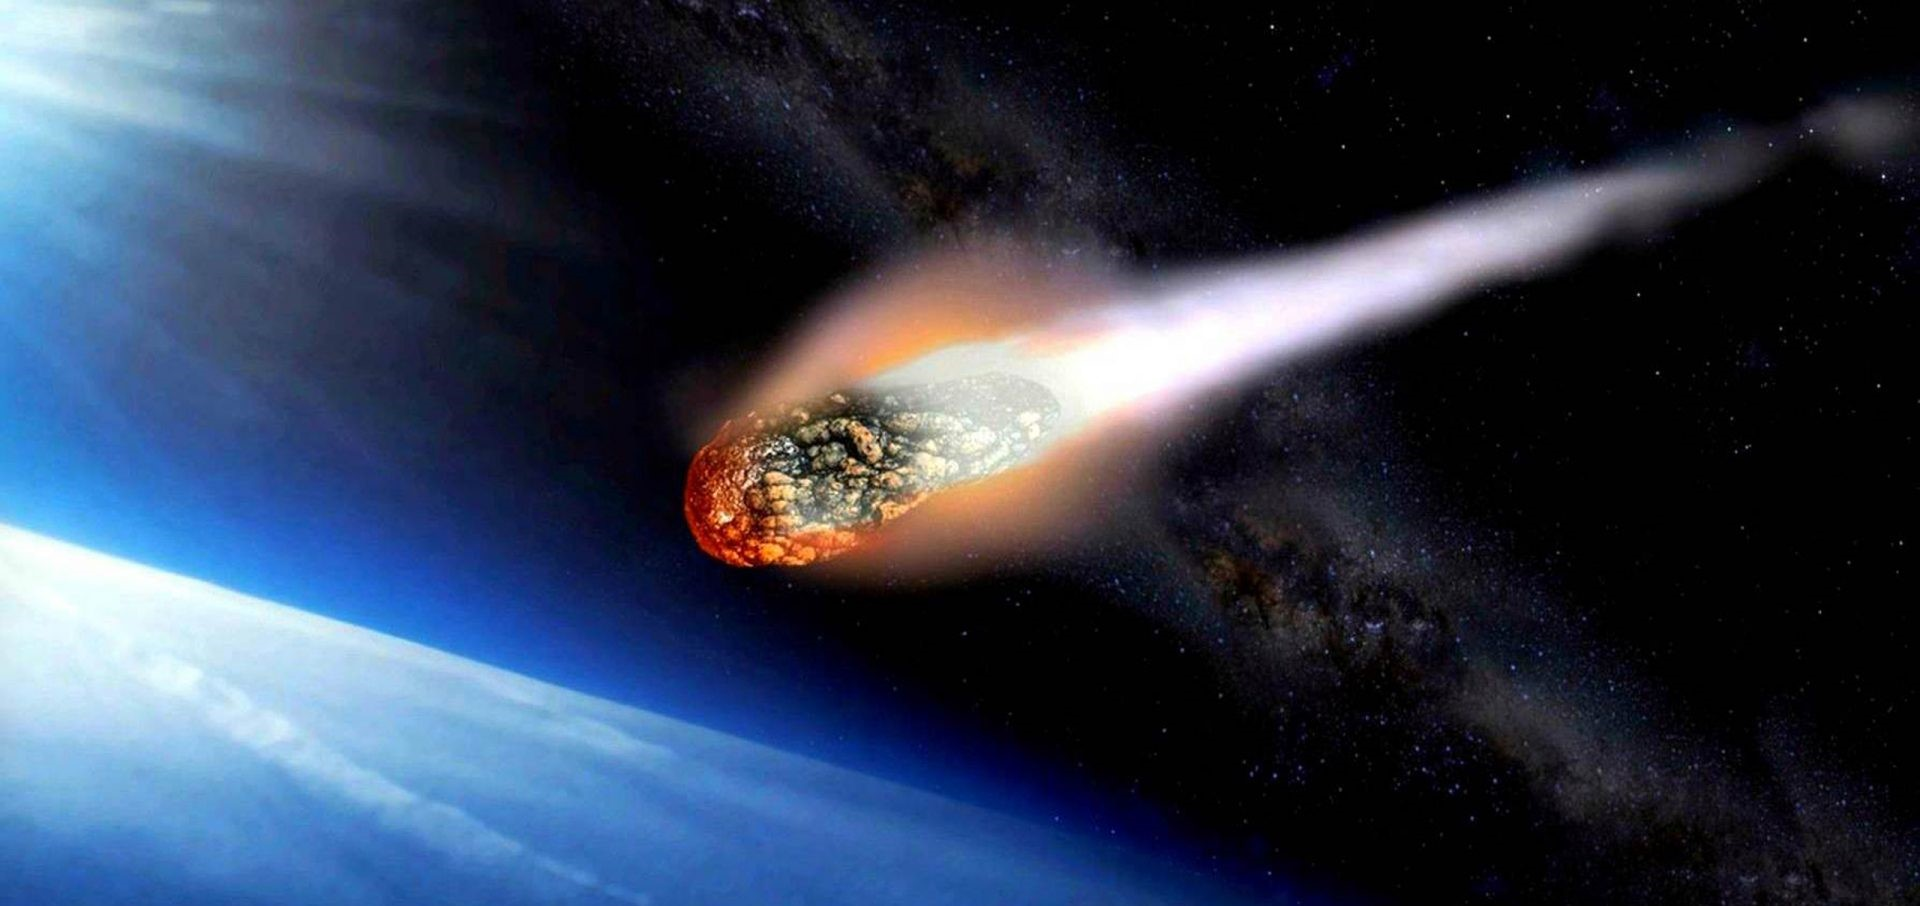 Asteroid Burn In The Earths Atmosphere Hd Wallpaper For